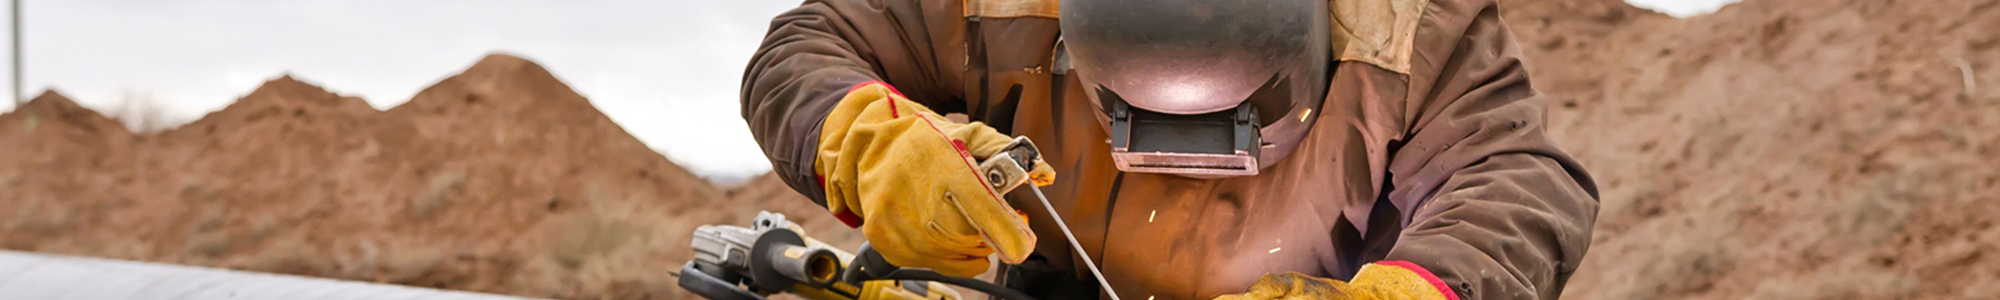 Boilermaker welder working on a pipeline wearing safety gear